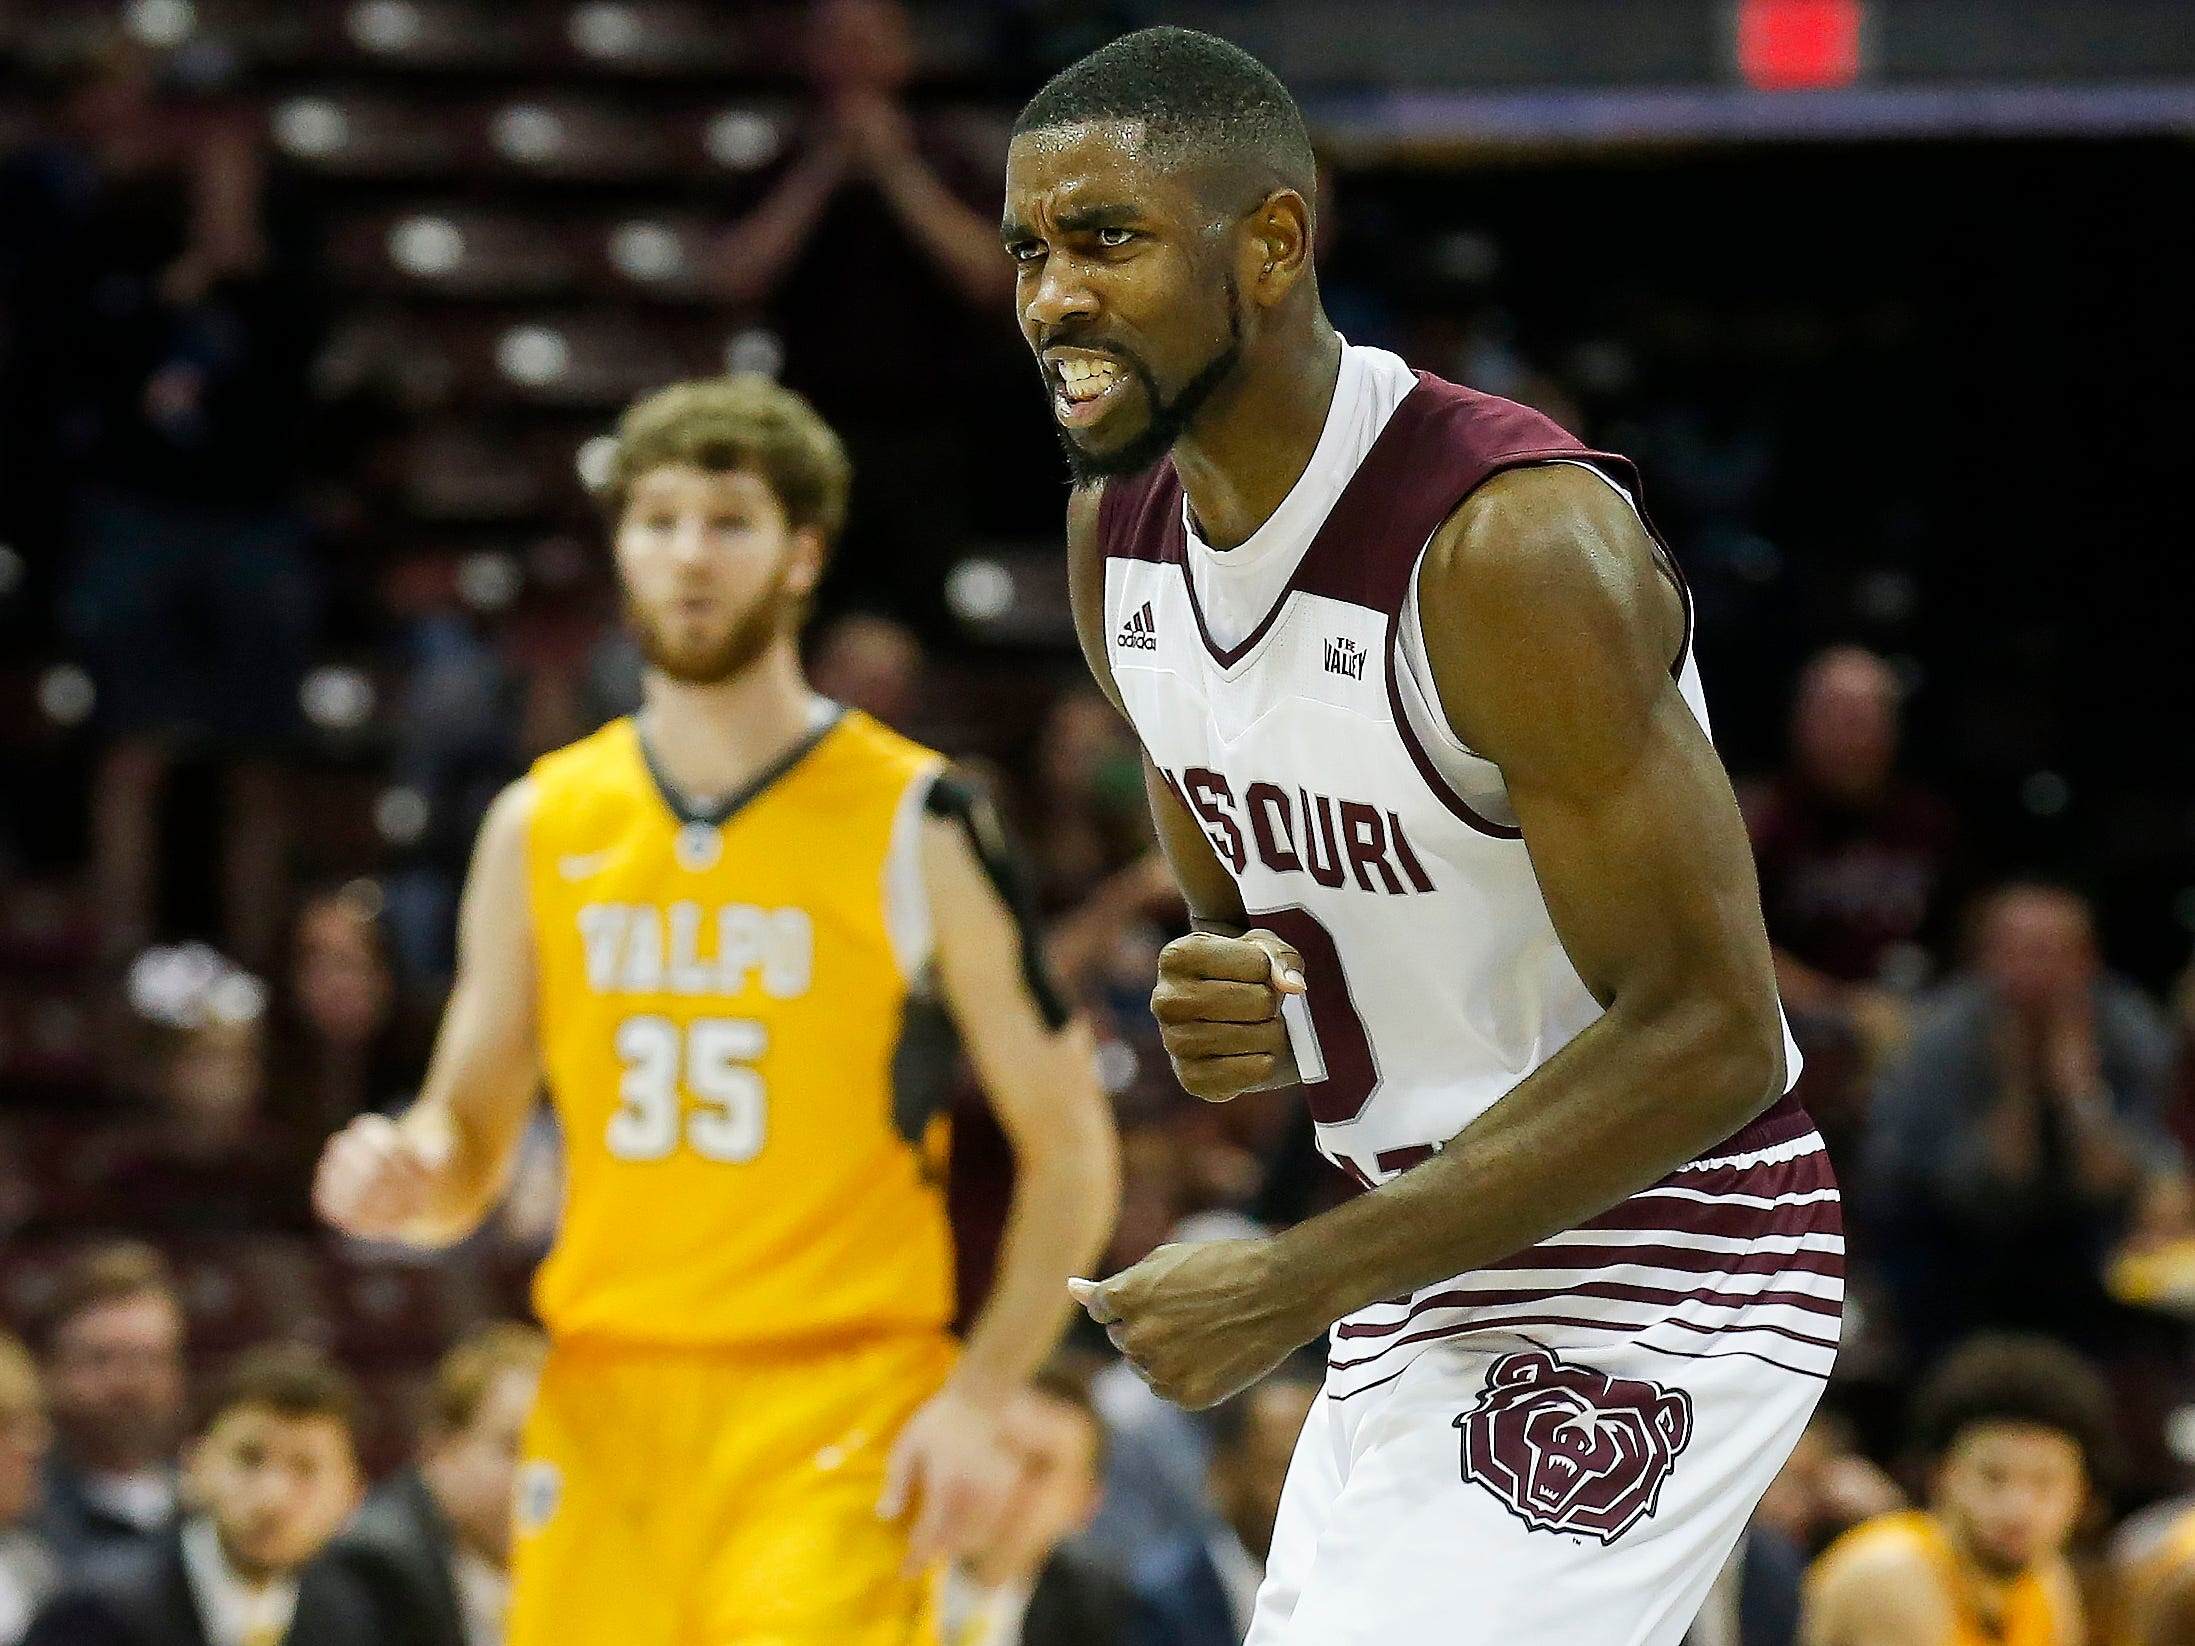 Josh Webster, of Missouri State University, reacts after a play in the Bears 82-66 loss to Valparaiso at JQH Arena on Saturday, Jan. 5, 2018.